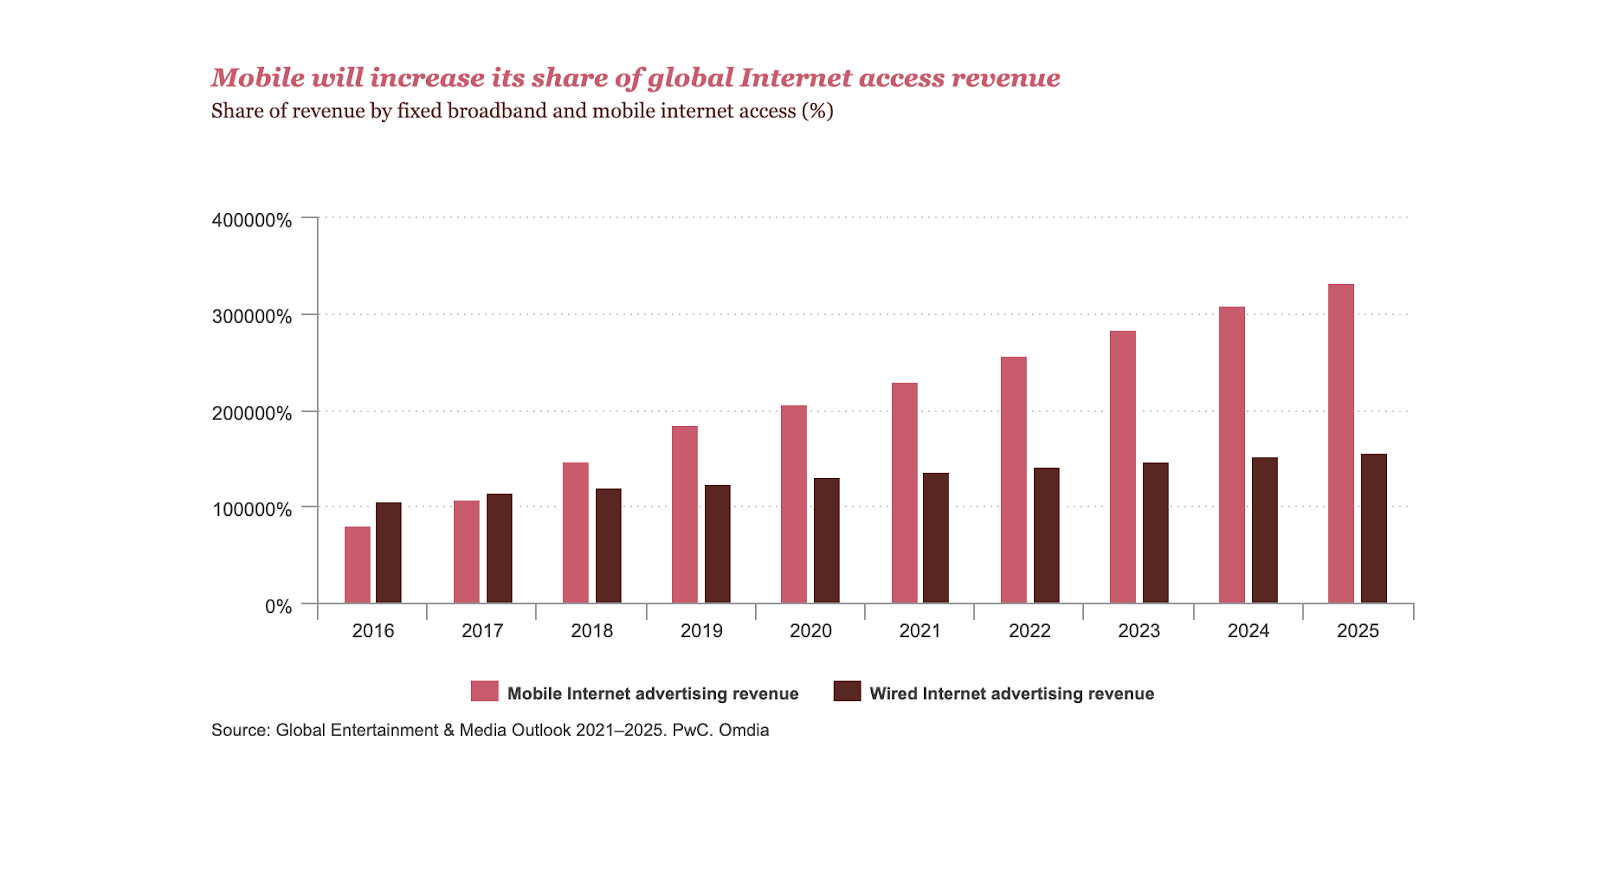 this graph shows that mobile will increase its share of internet access across revenue